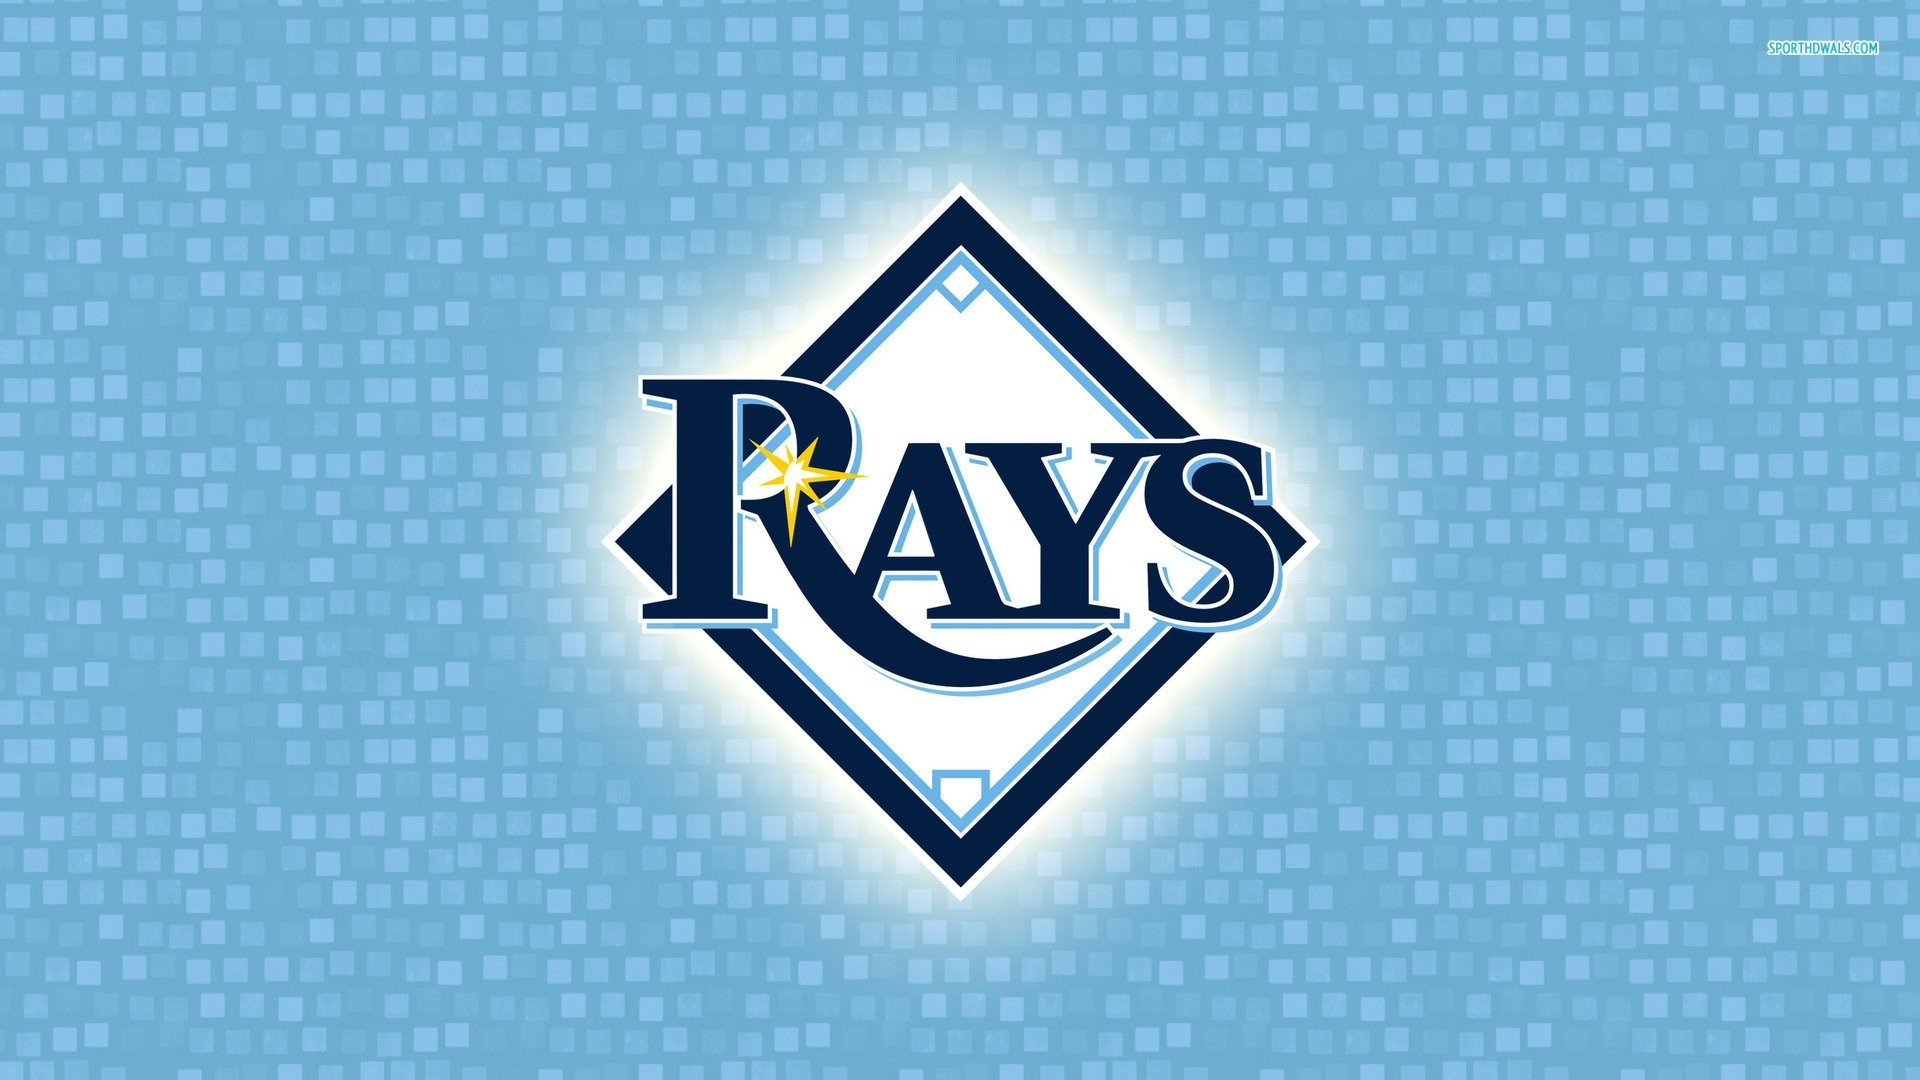 1920x1080 tampa bay rays background wallpapers - photo #1. ASWB Association of Social  Work Boards